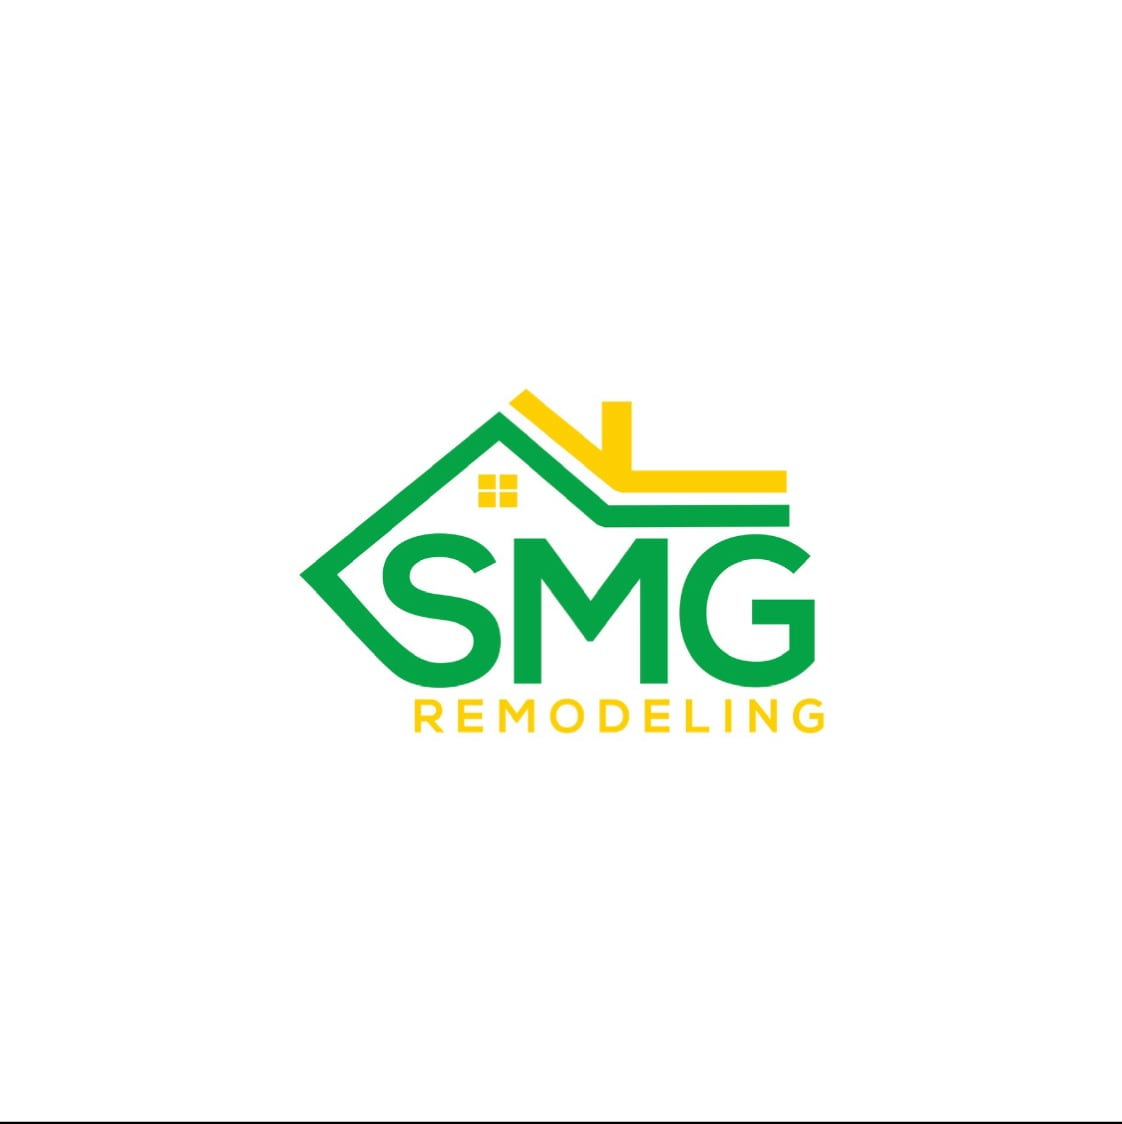 SMG Remodeling